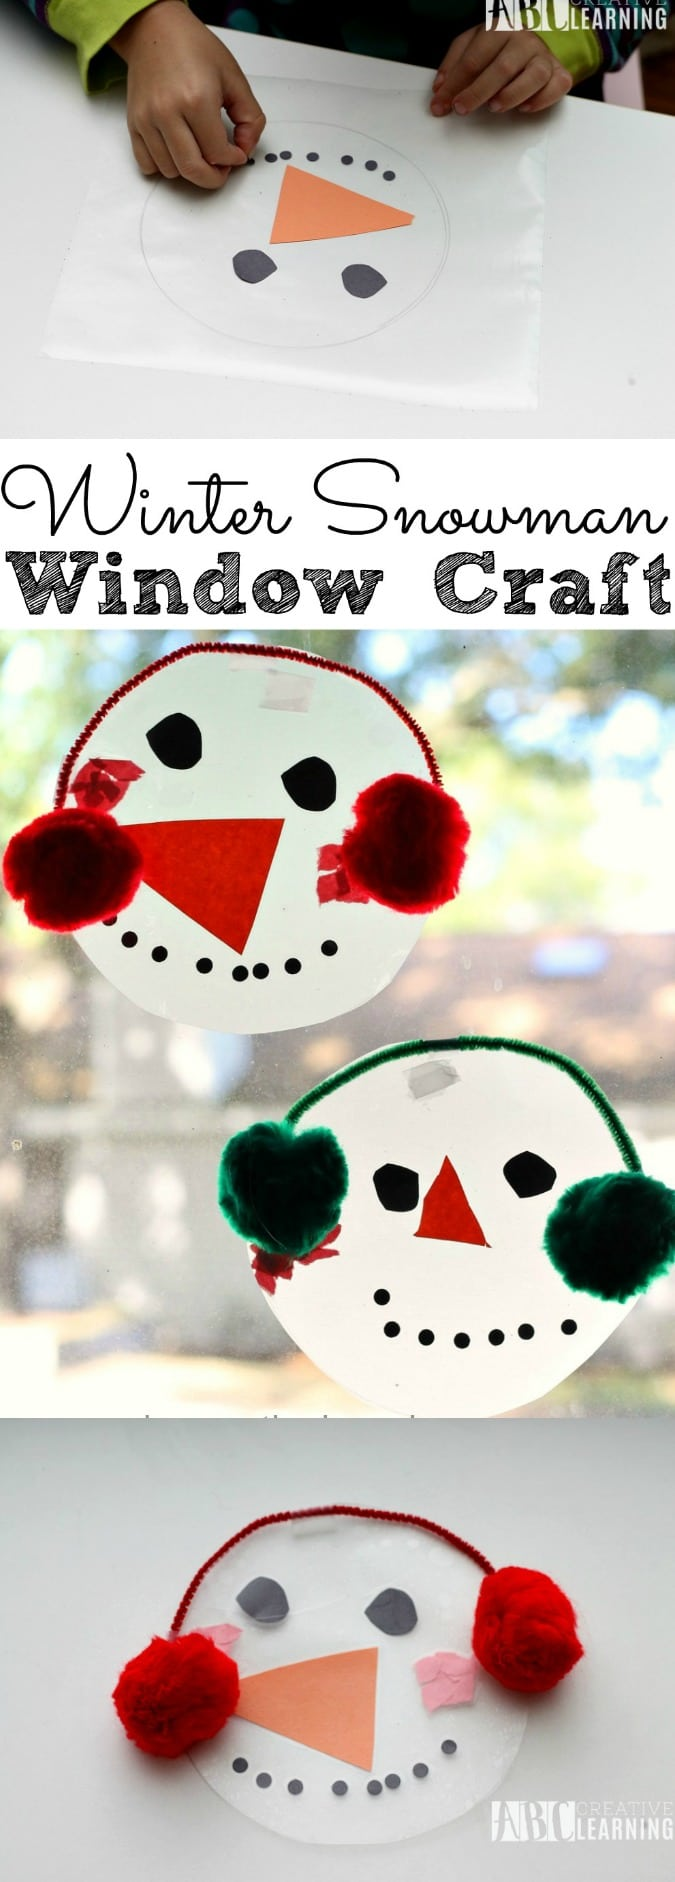 Winter Snowman Window Craft